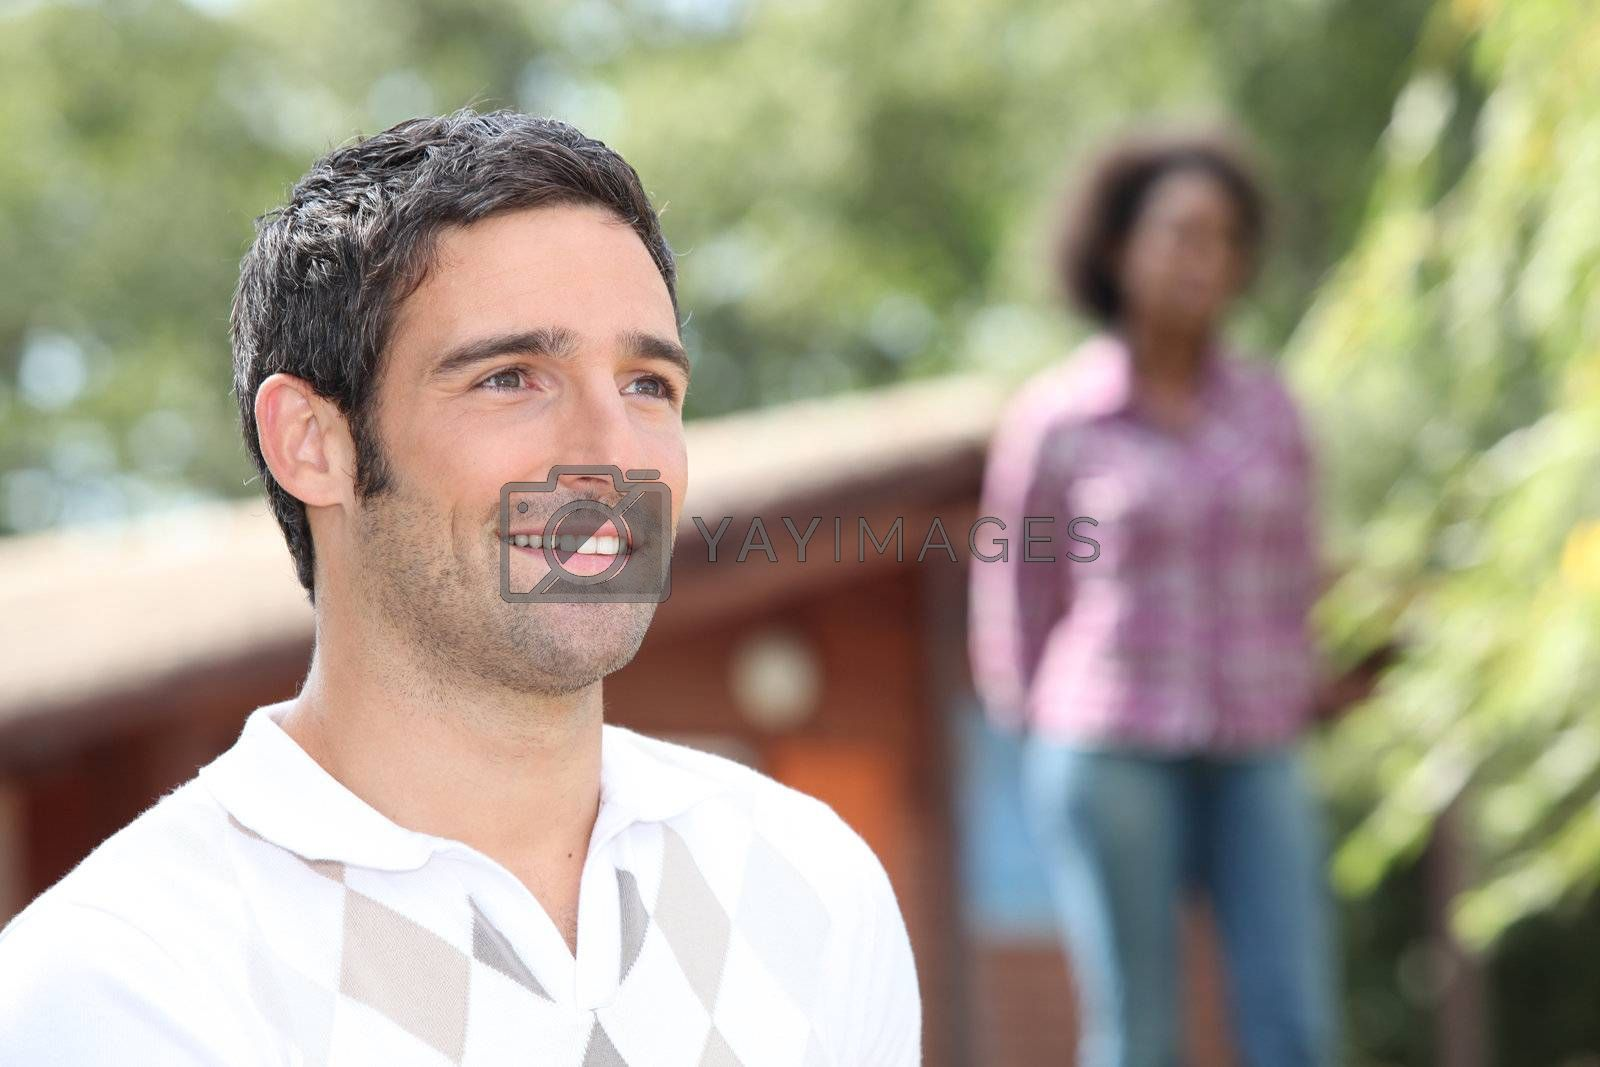 Man standing outside a log cabin with a woman out of focus in the background